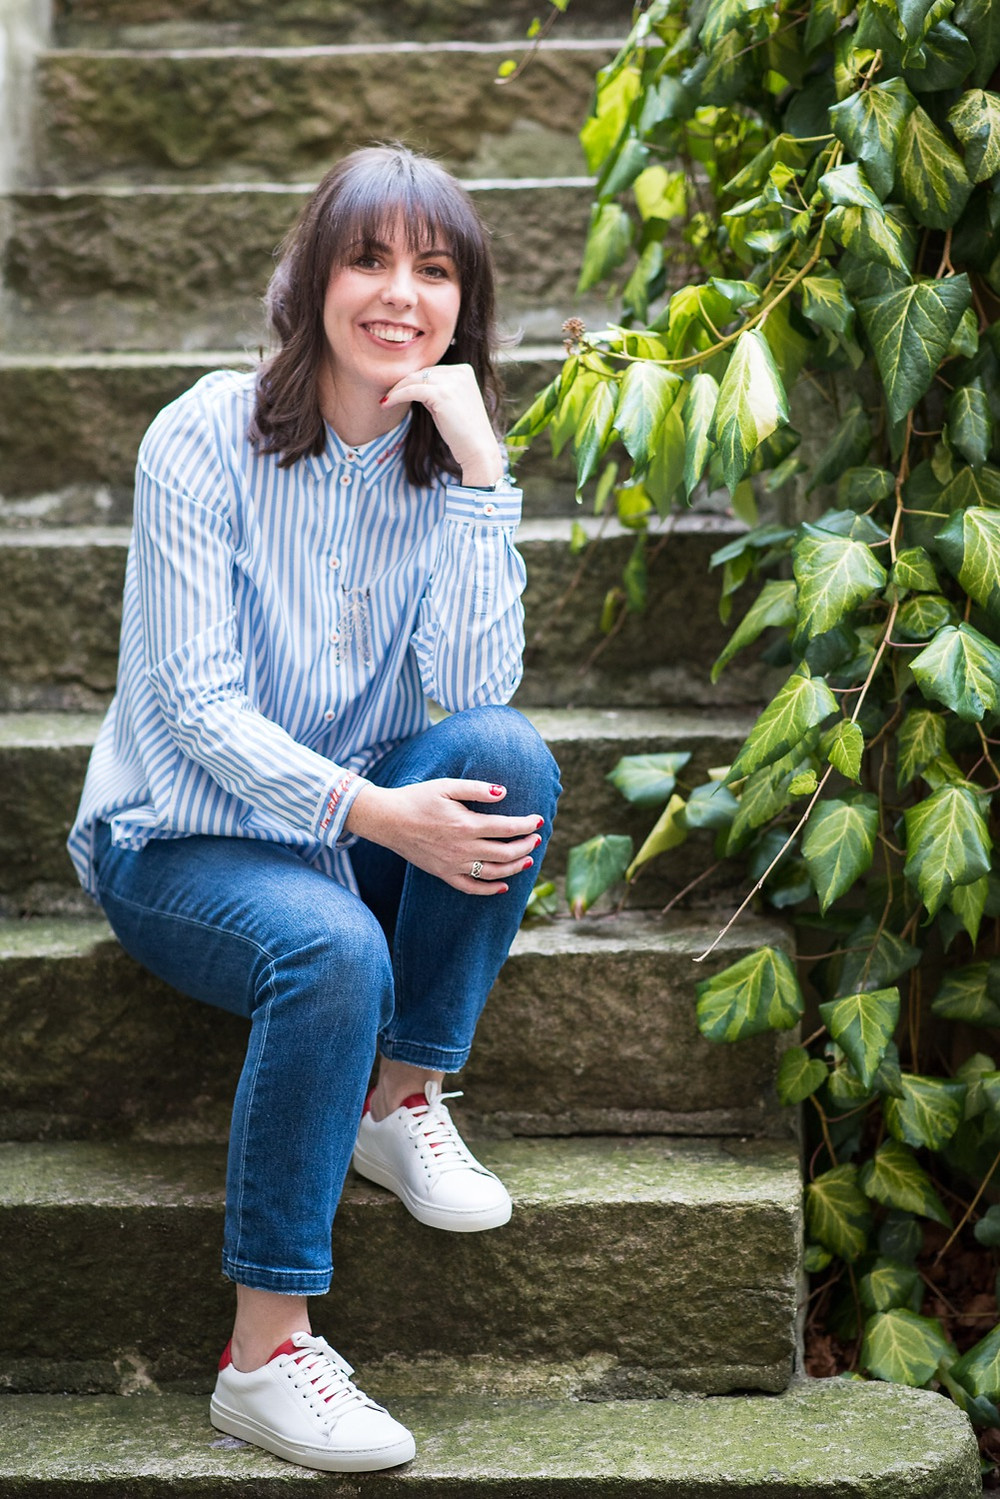 aberdeen-branding-ommerial-business-photography-pampicks-sitting-on-steps-with-green-foliage